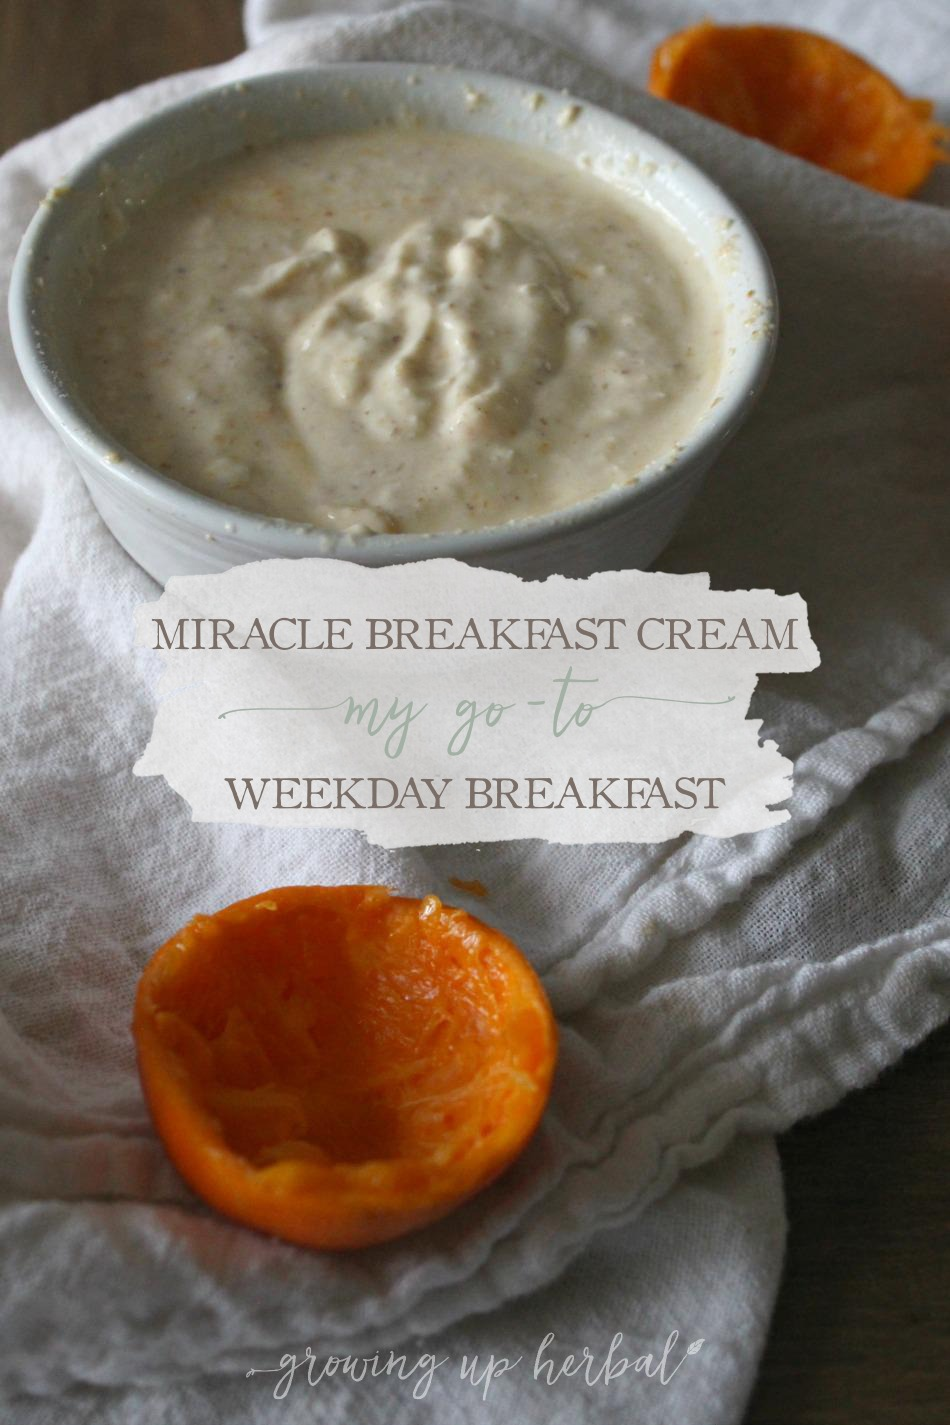 Miracle Breakfast Cream: My Go-To Weekday Breakfast | Growing Up Herbal | Wanna know what I eat every morning for breakfast? It's healthy and delicious, and I'm sharing the full recipe with you!